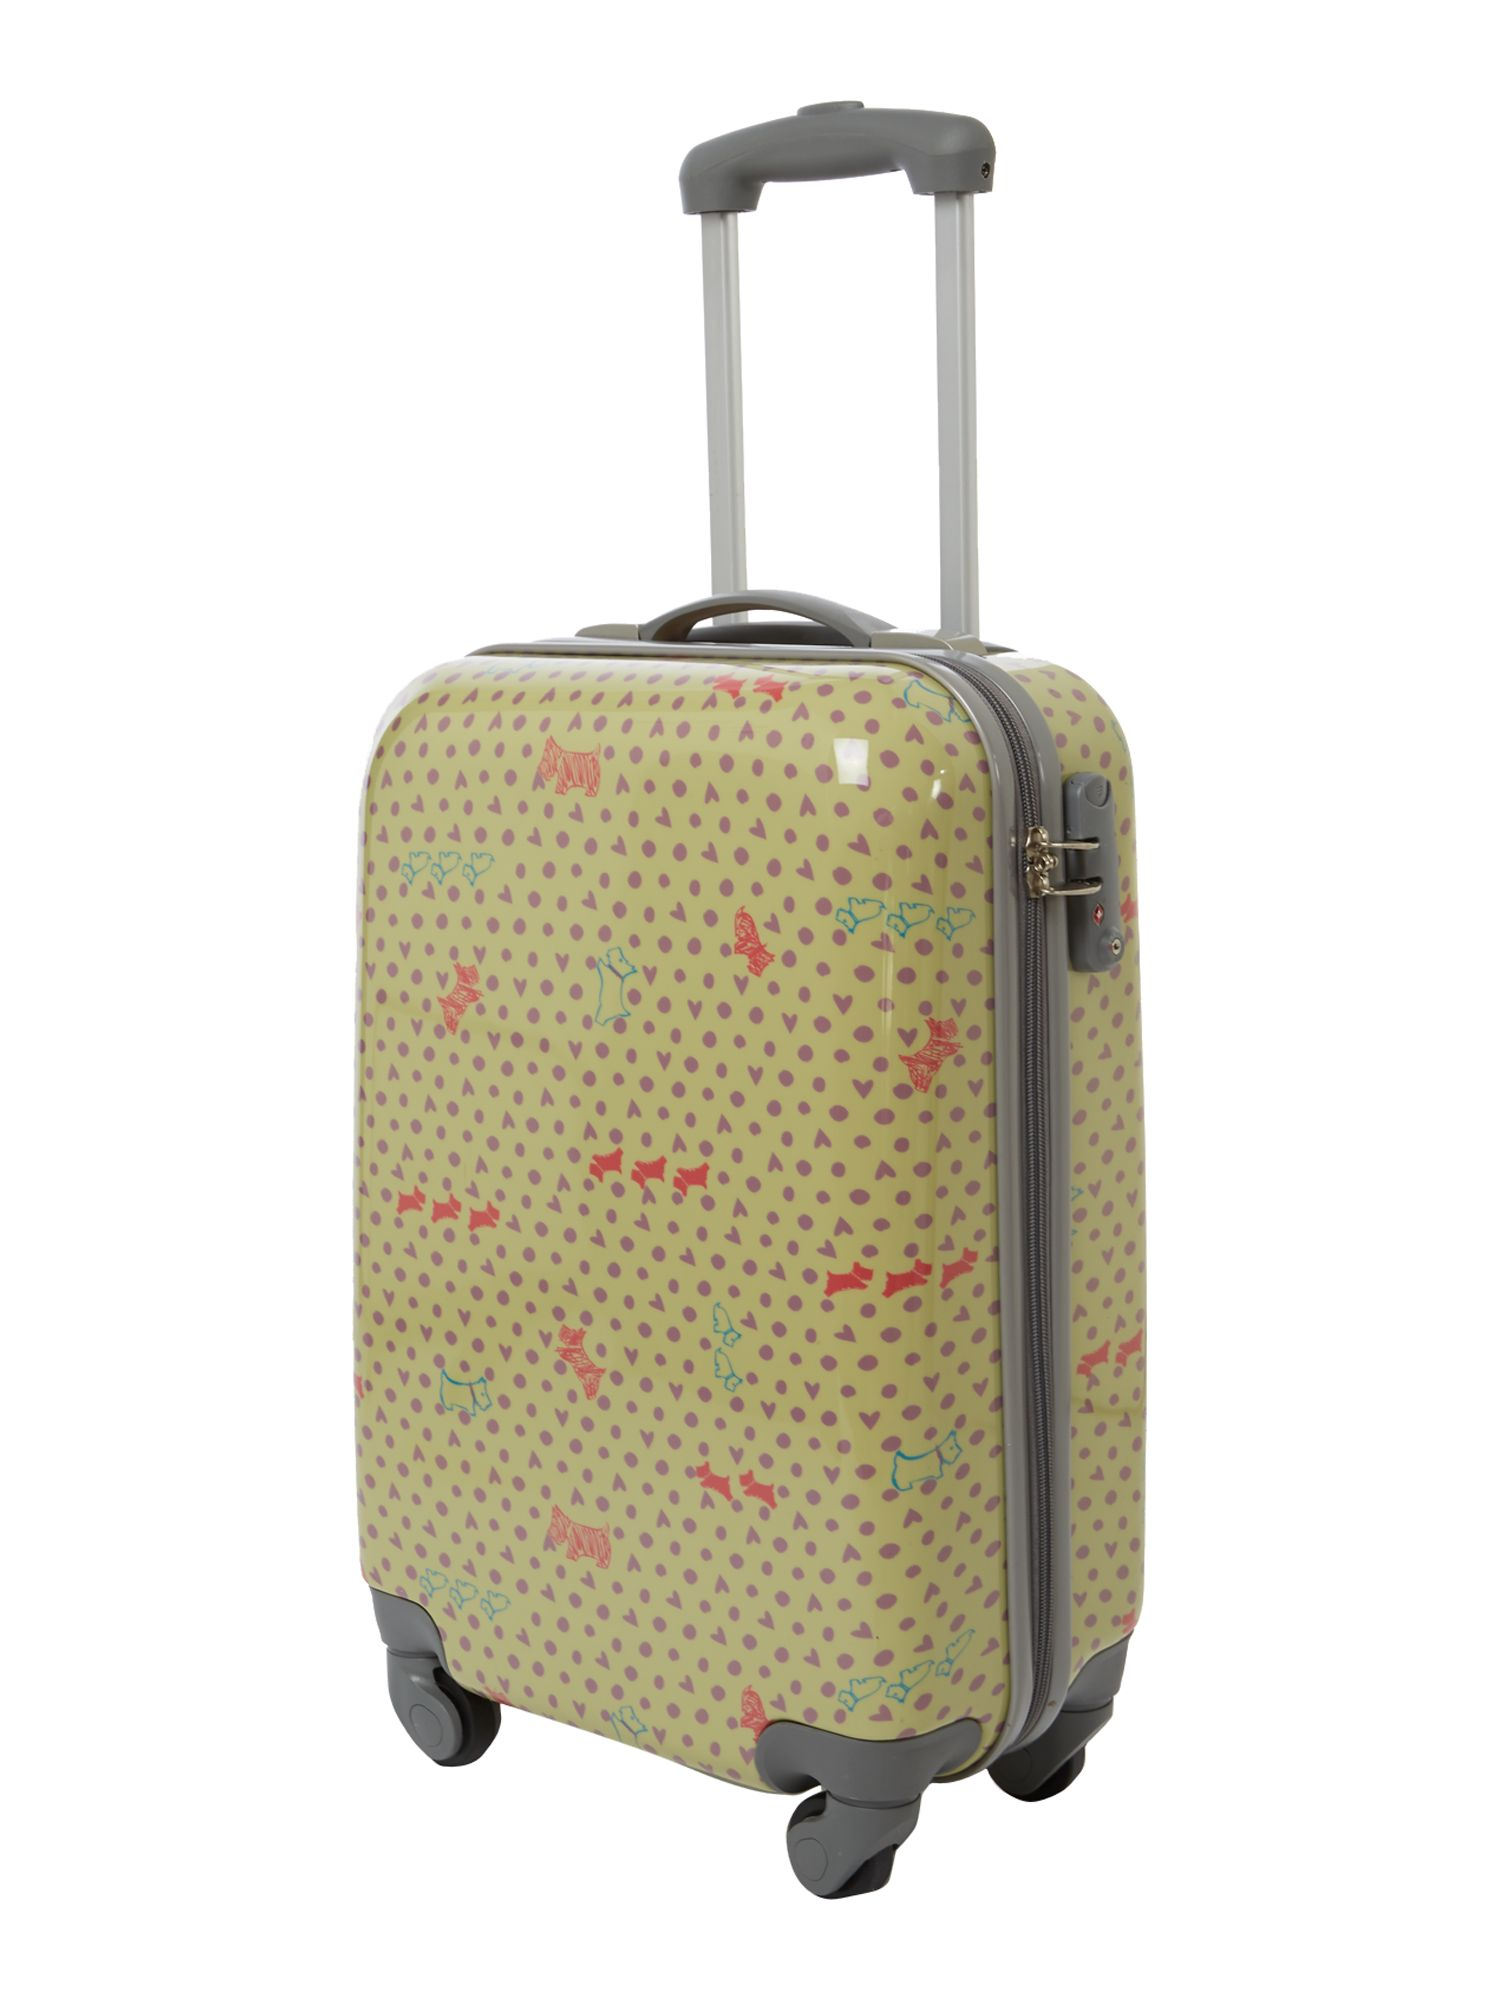 Hibbert pistachio 4 wheel hard cabin trolley case